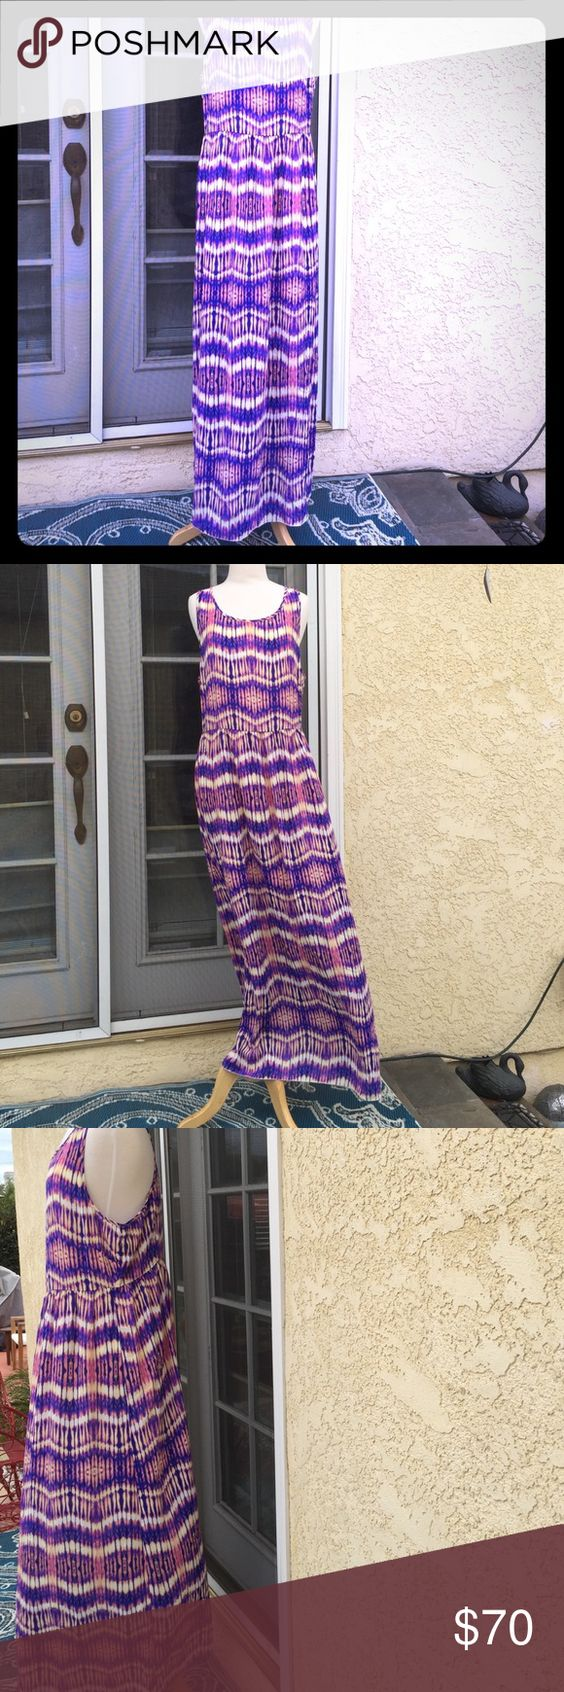 Neumann Marcus dress Stunning and flowing maxi dress with back zipper. Electric pattern of colors, Purple,blue, white,pink,and orange, half lining slip,100%poly. Worn once still new Neiman Marcus Dresses Maxi